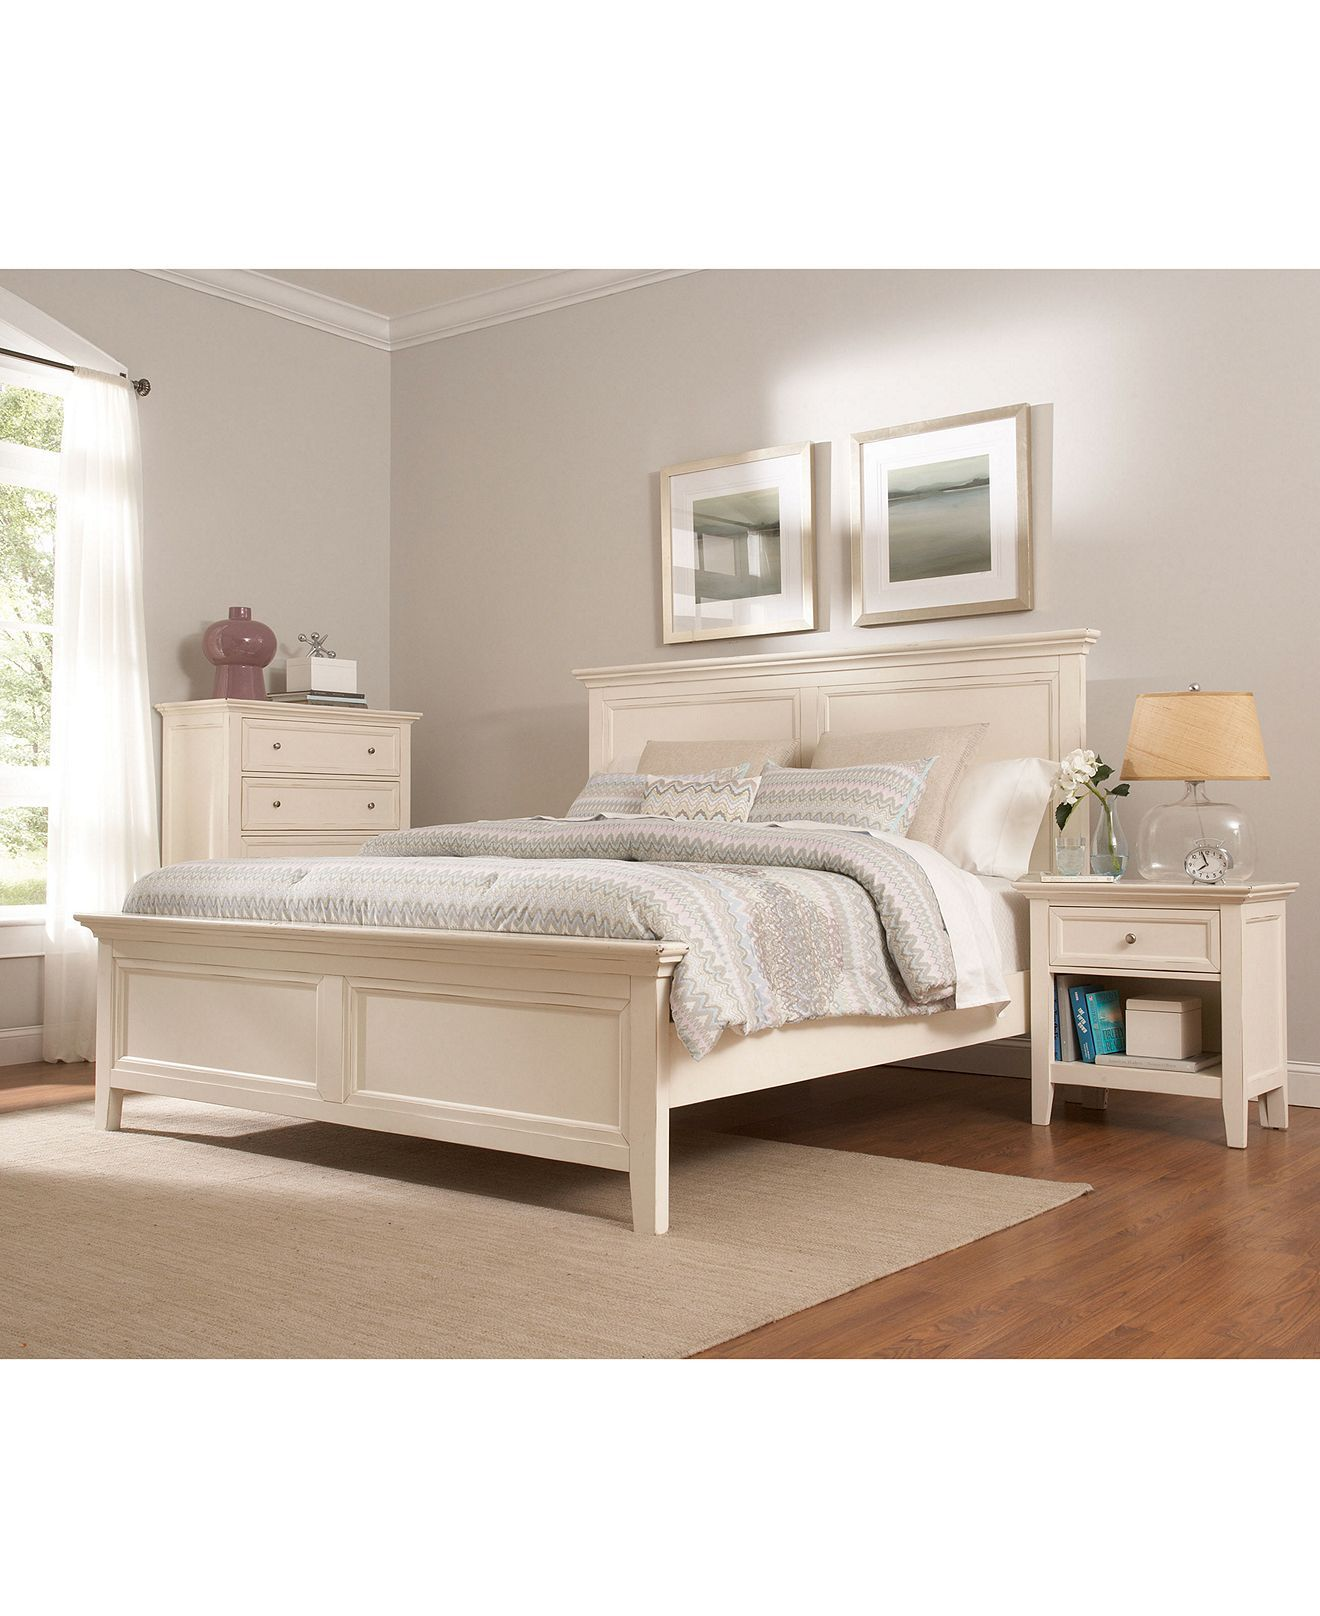 Sanibel Bedroom Furniture Collection, Created for Macy\'s | Cama ...